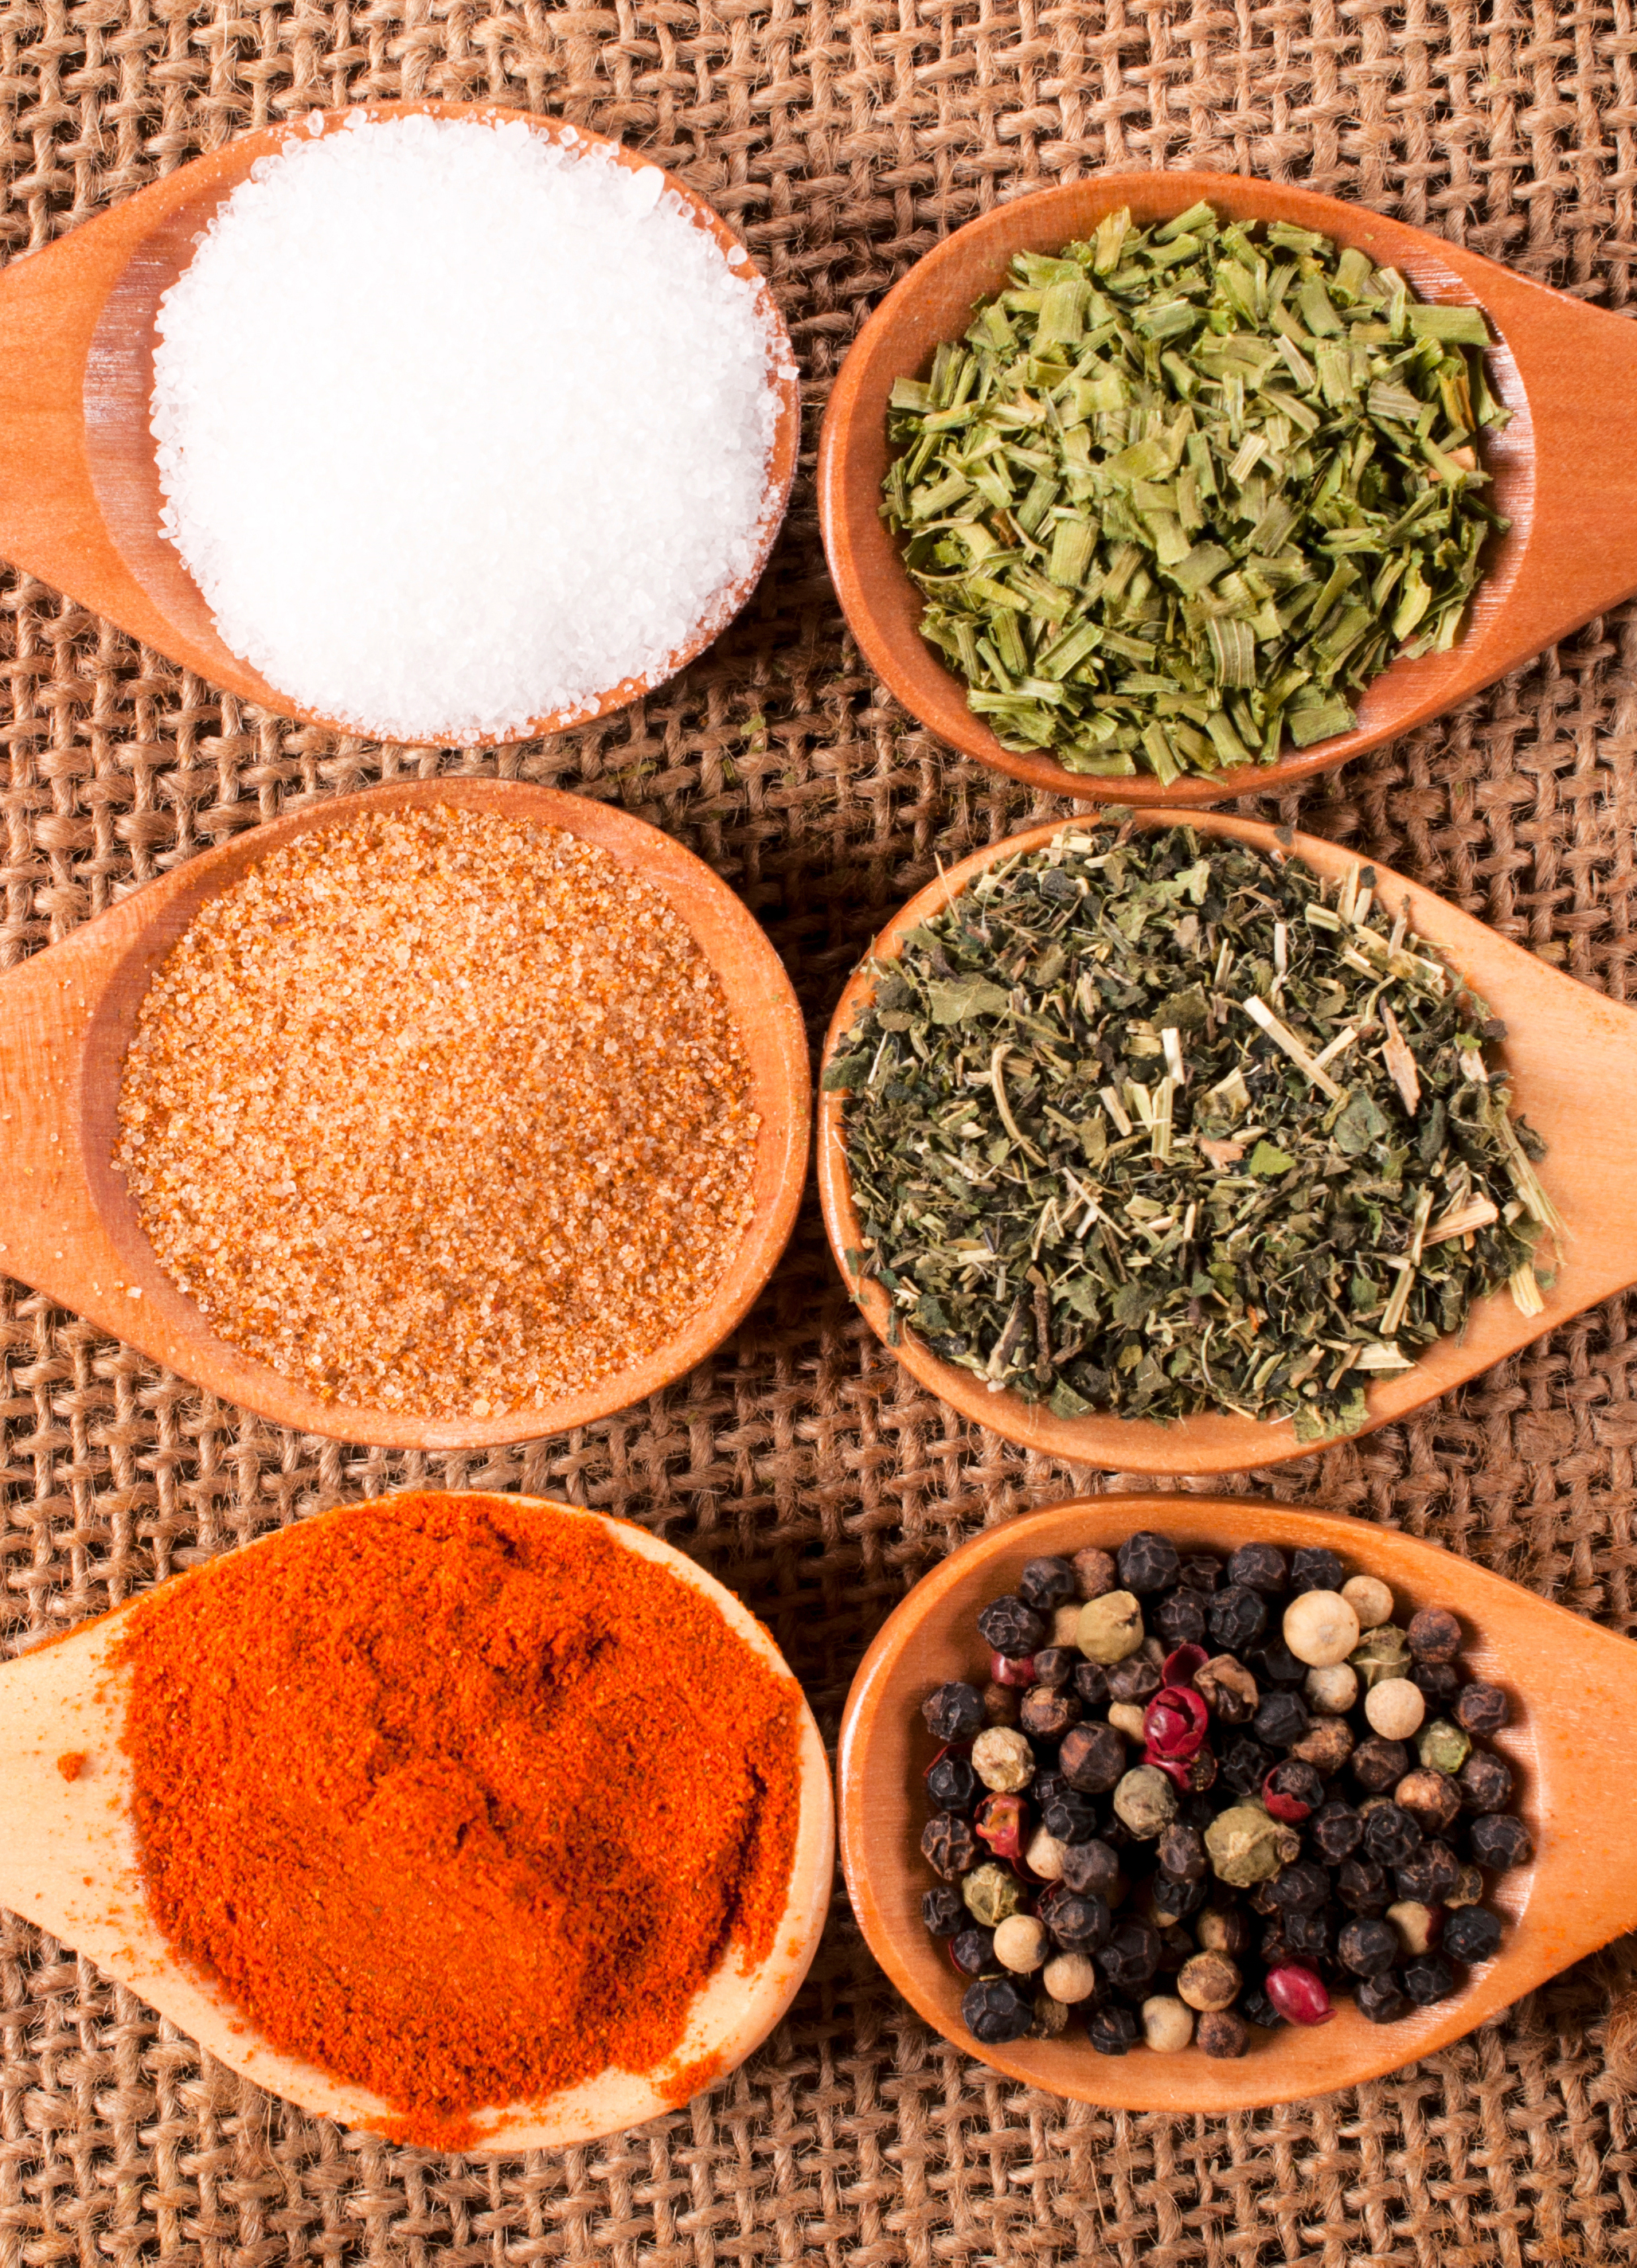 Basic Brine - A basic brine recipe to get you started. Use this recipe just as it is, or use it as a springboard for your culinary creation.2 cup kosher salt1 cup sugar3 teaspoons minced garlic1 teaspoon allspice1/2 teaspoon fresh ground pepper